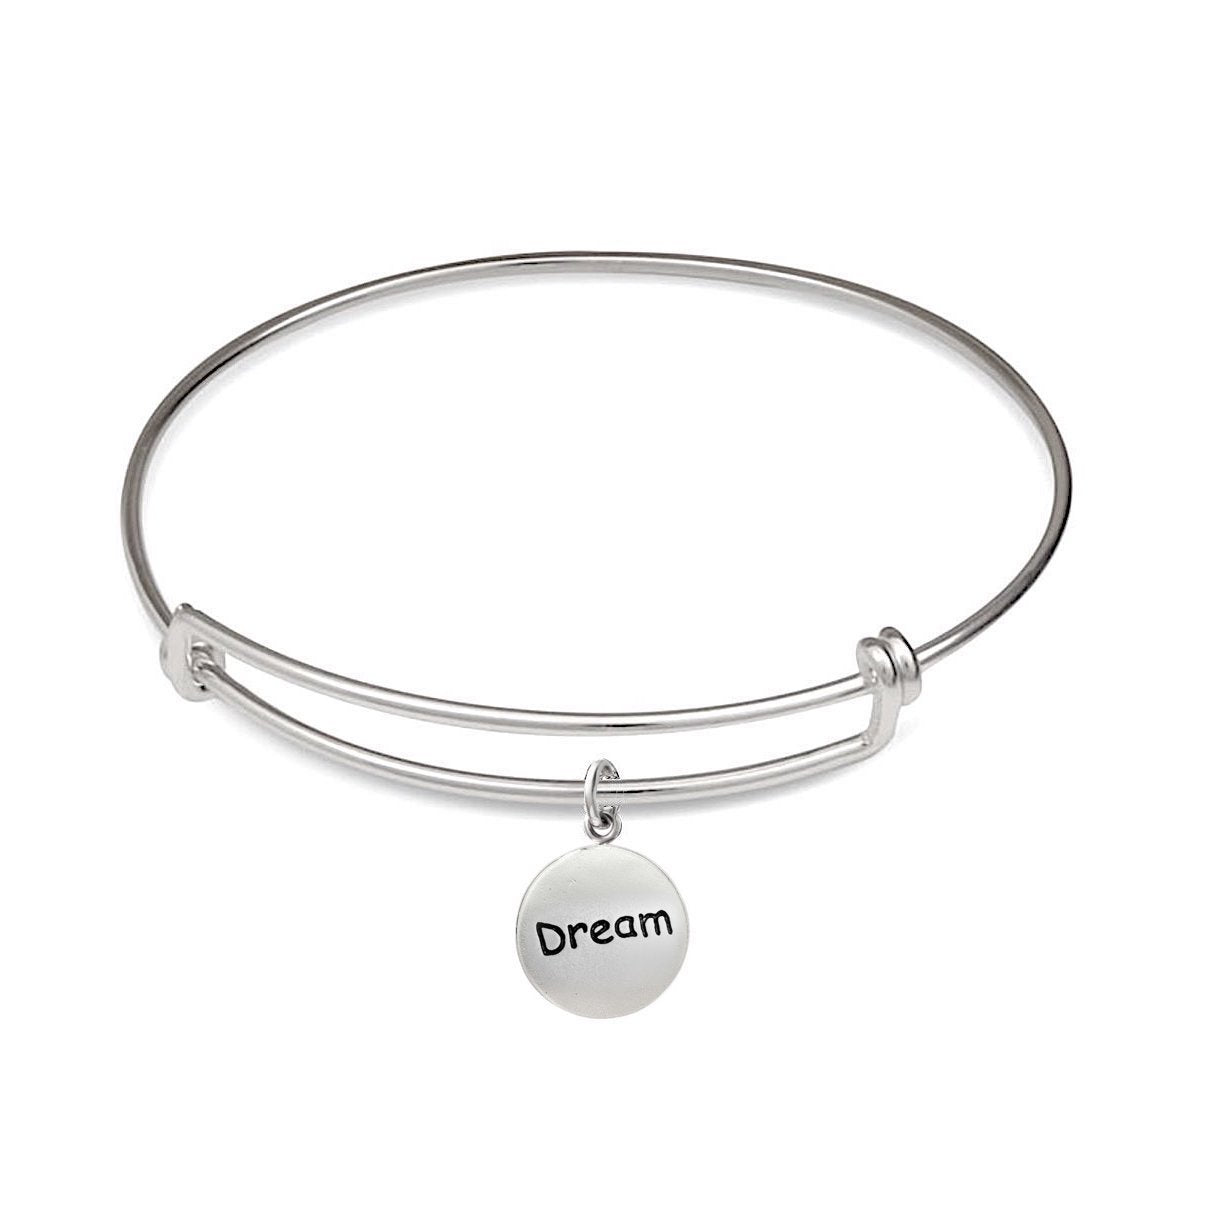 Dream Cuff Bangle